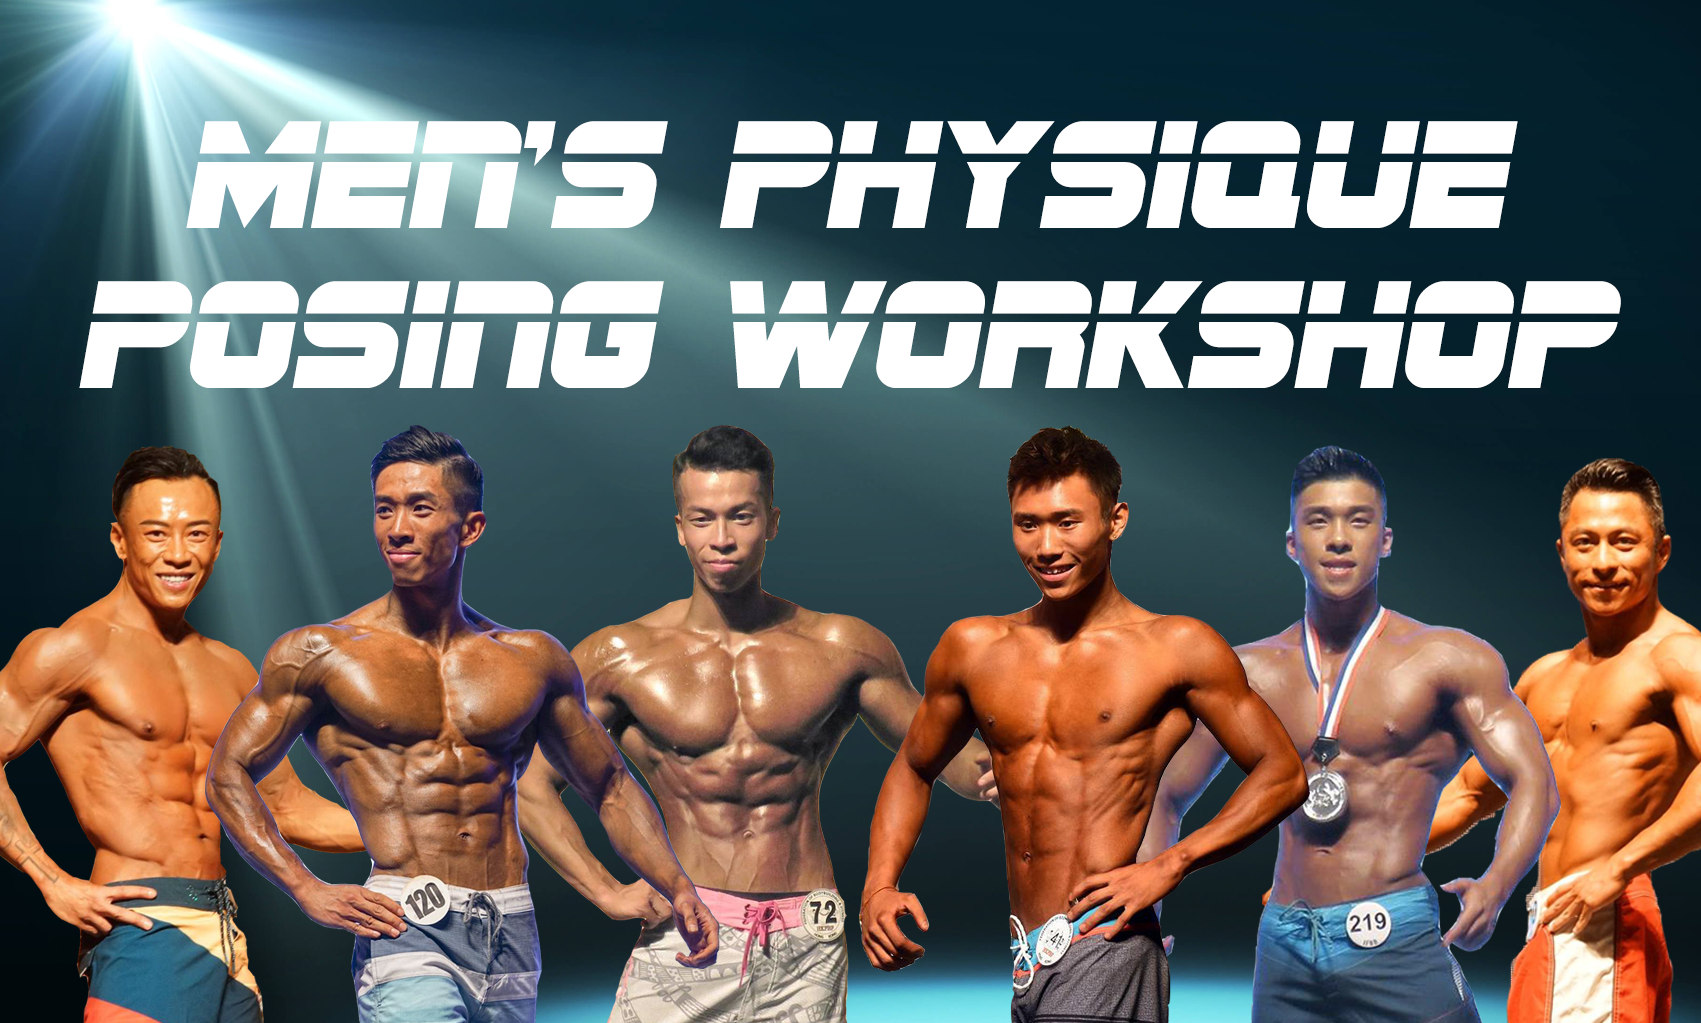 Men's Physique Posing Workshop